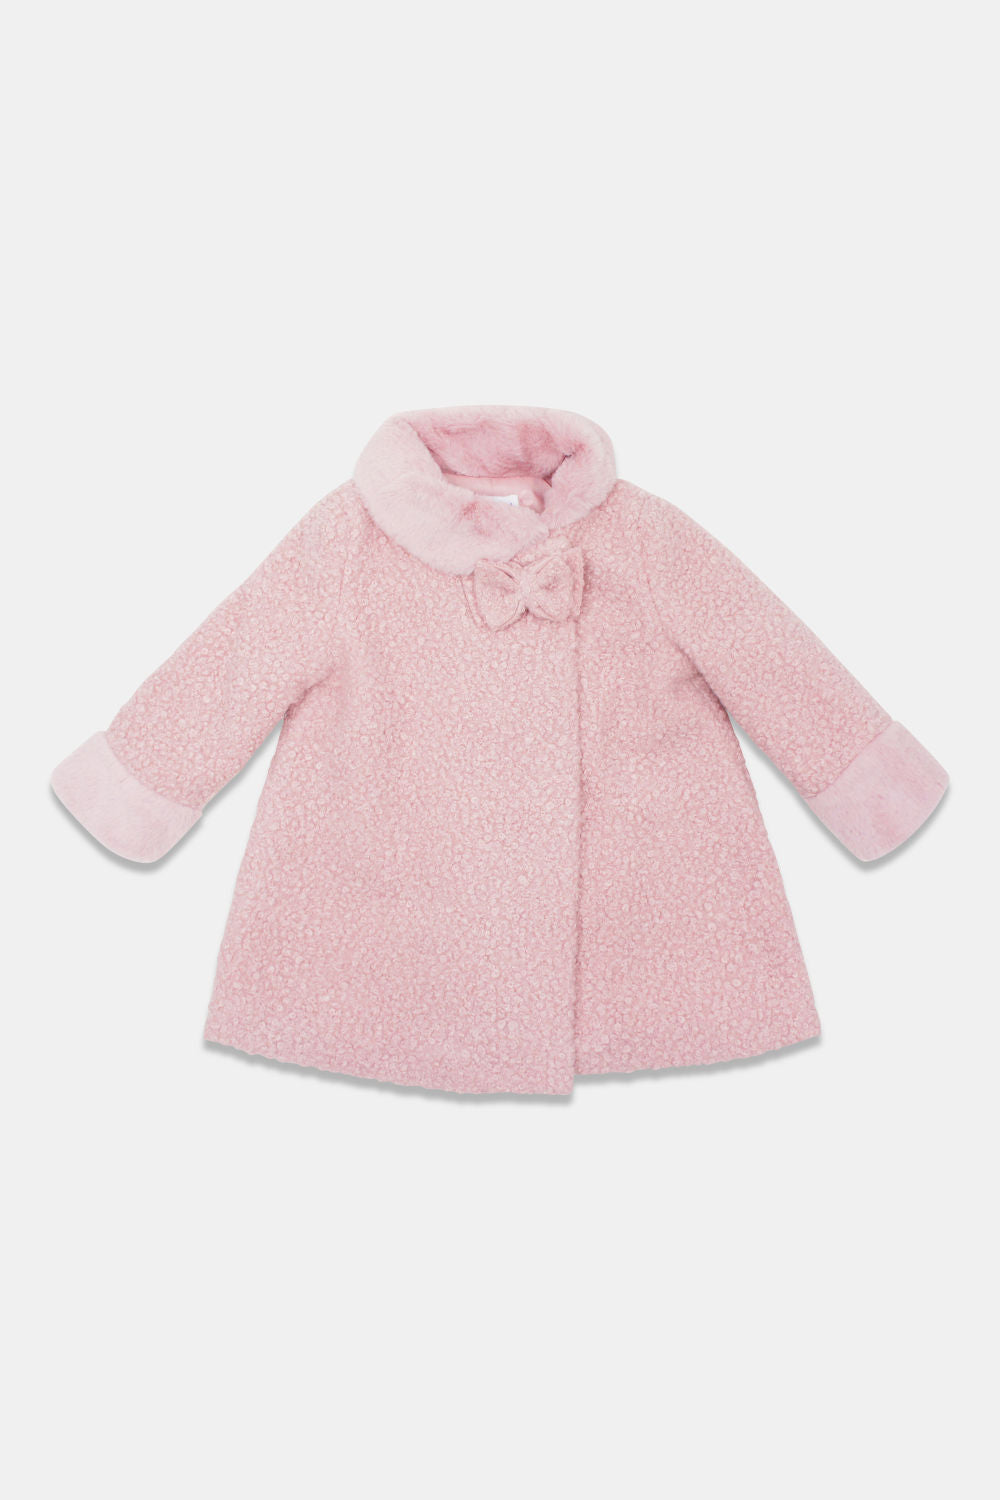 Mayoral Blush Teddy Coat